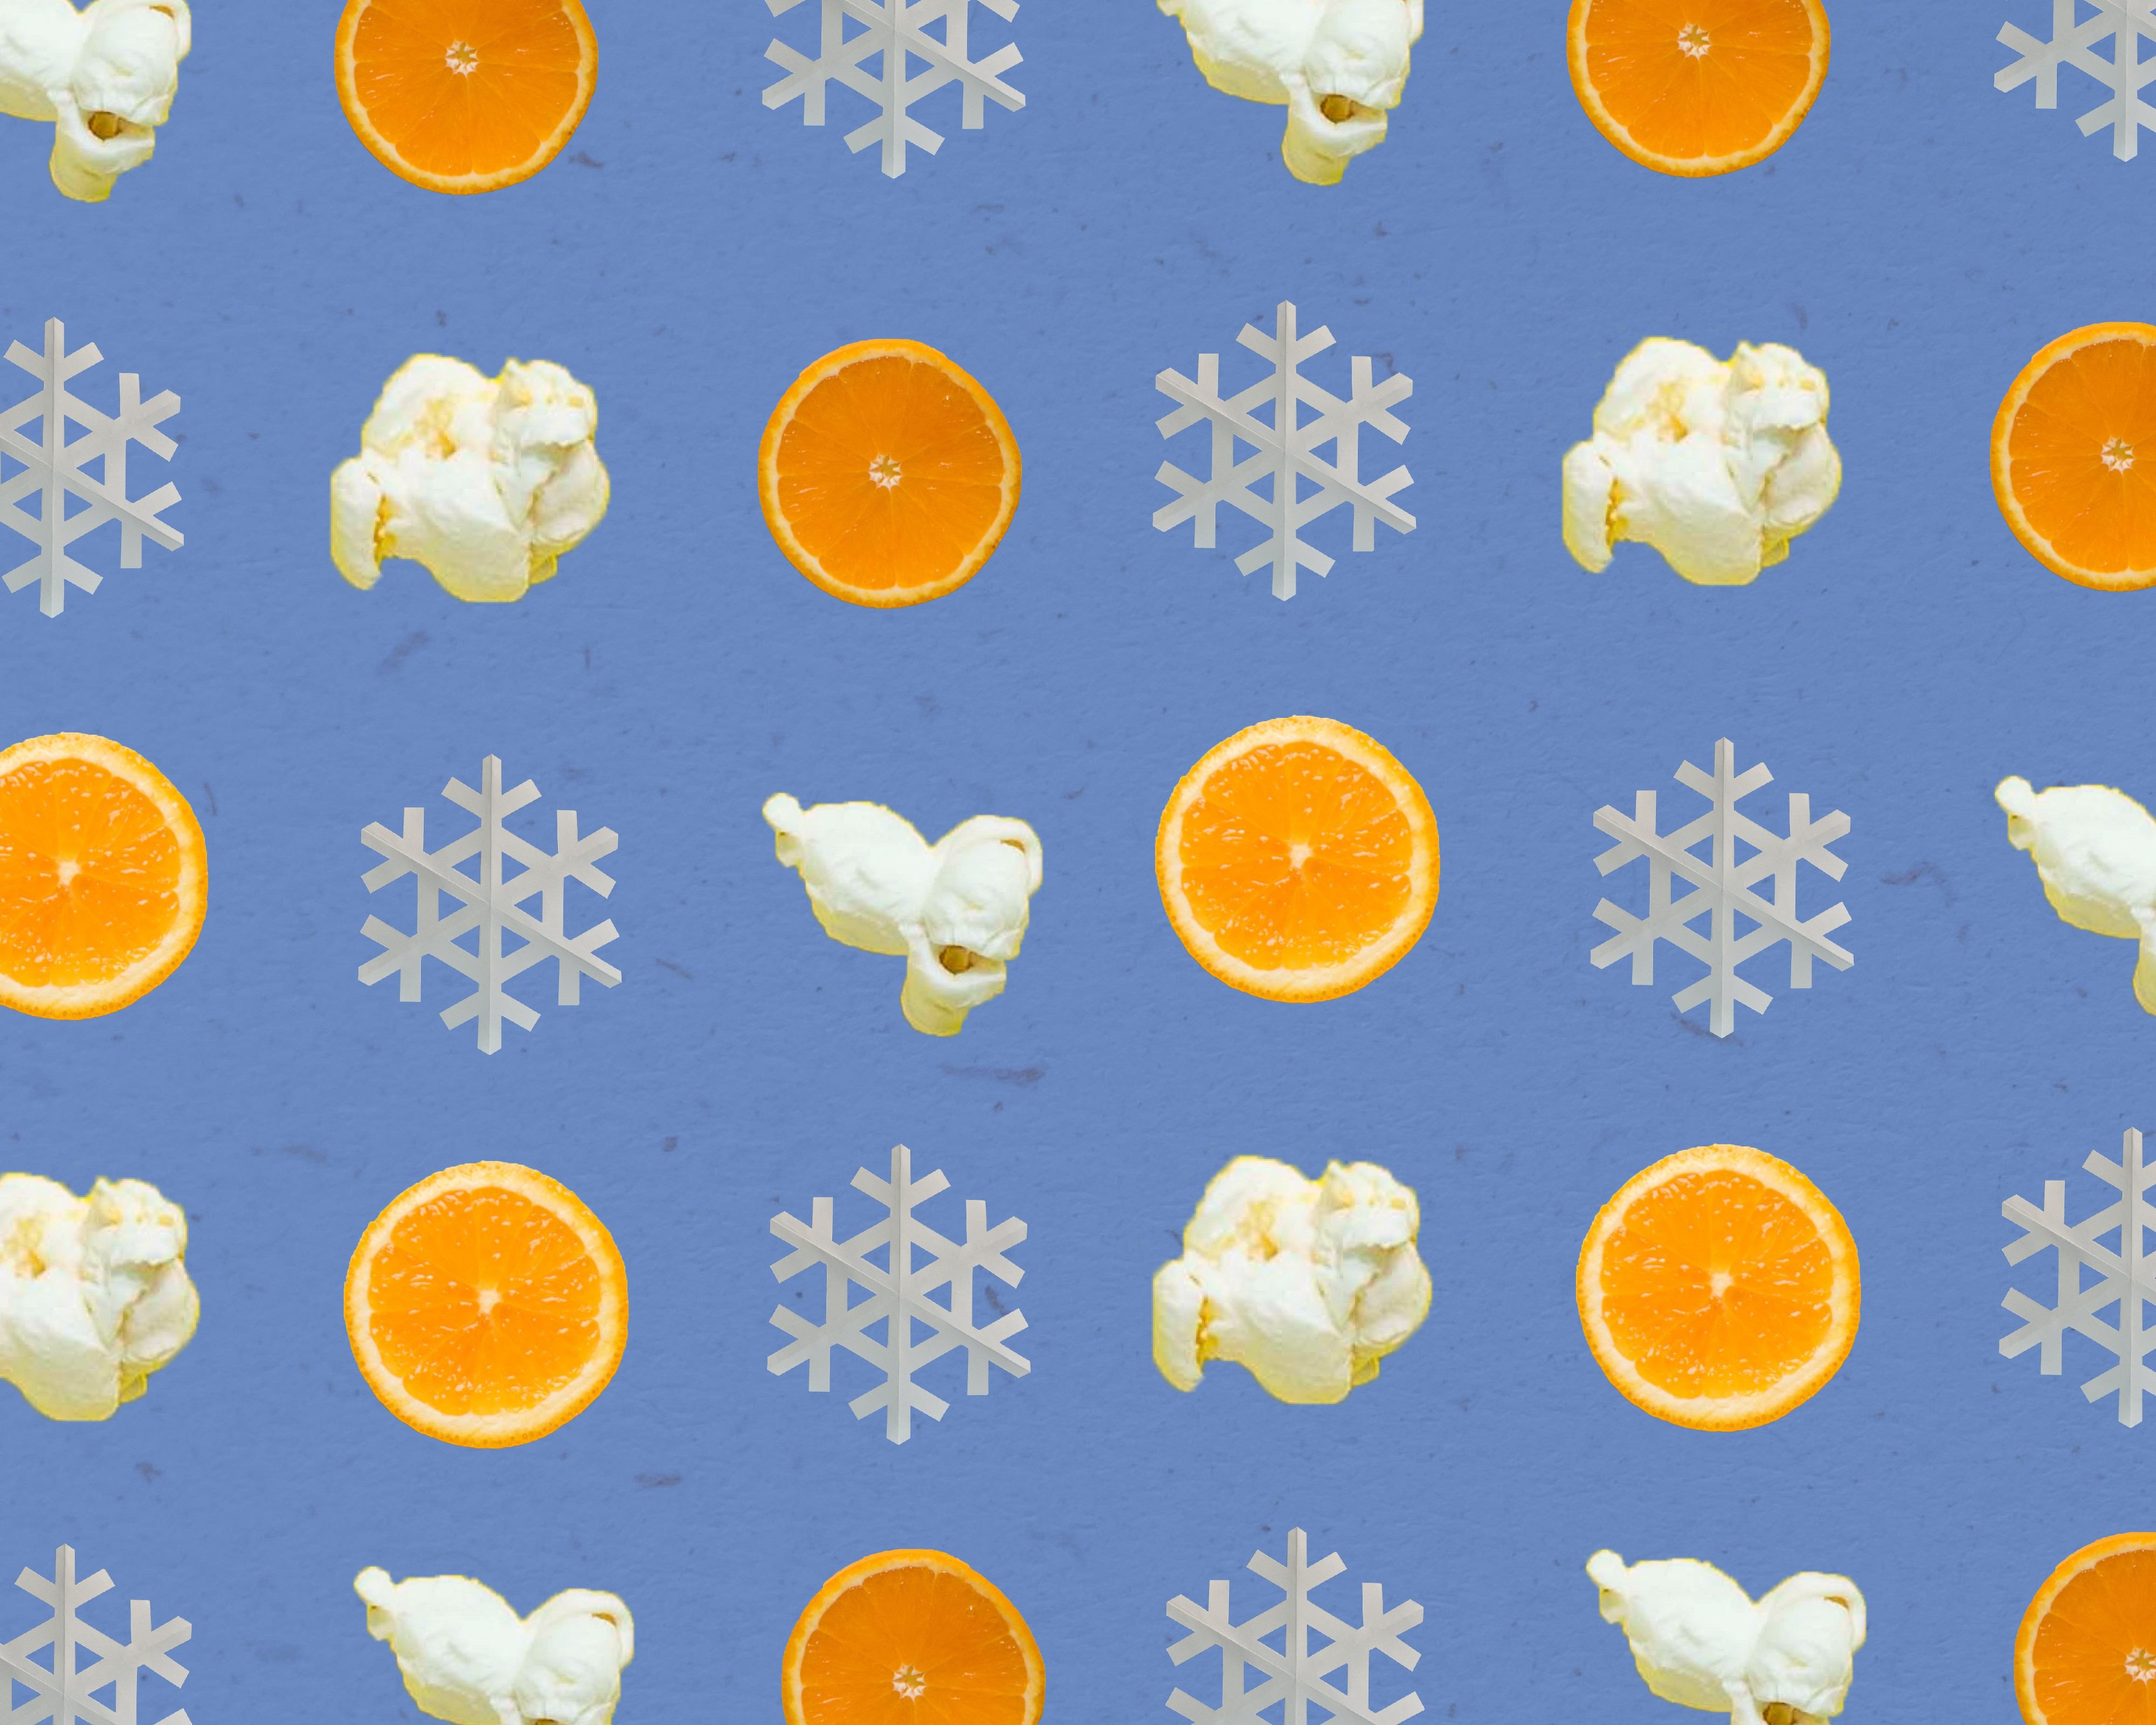 A background type pattern design consisting of orange slices, popcorn, and snowflakes on a blue background